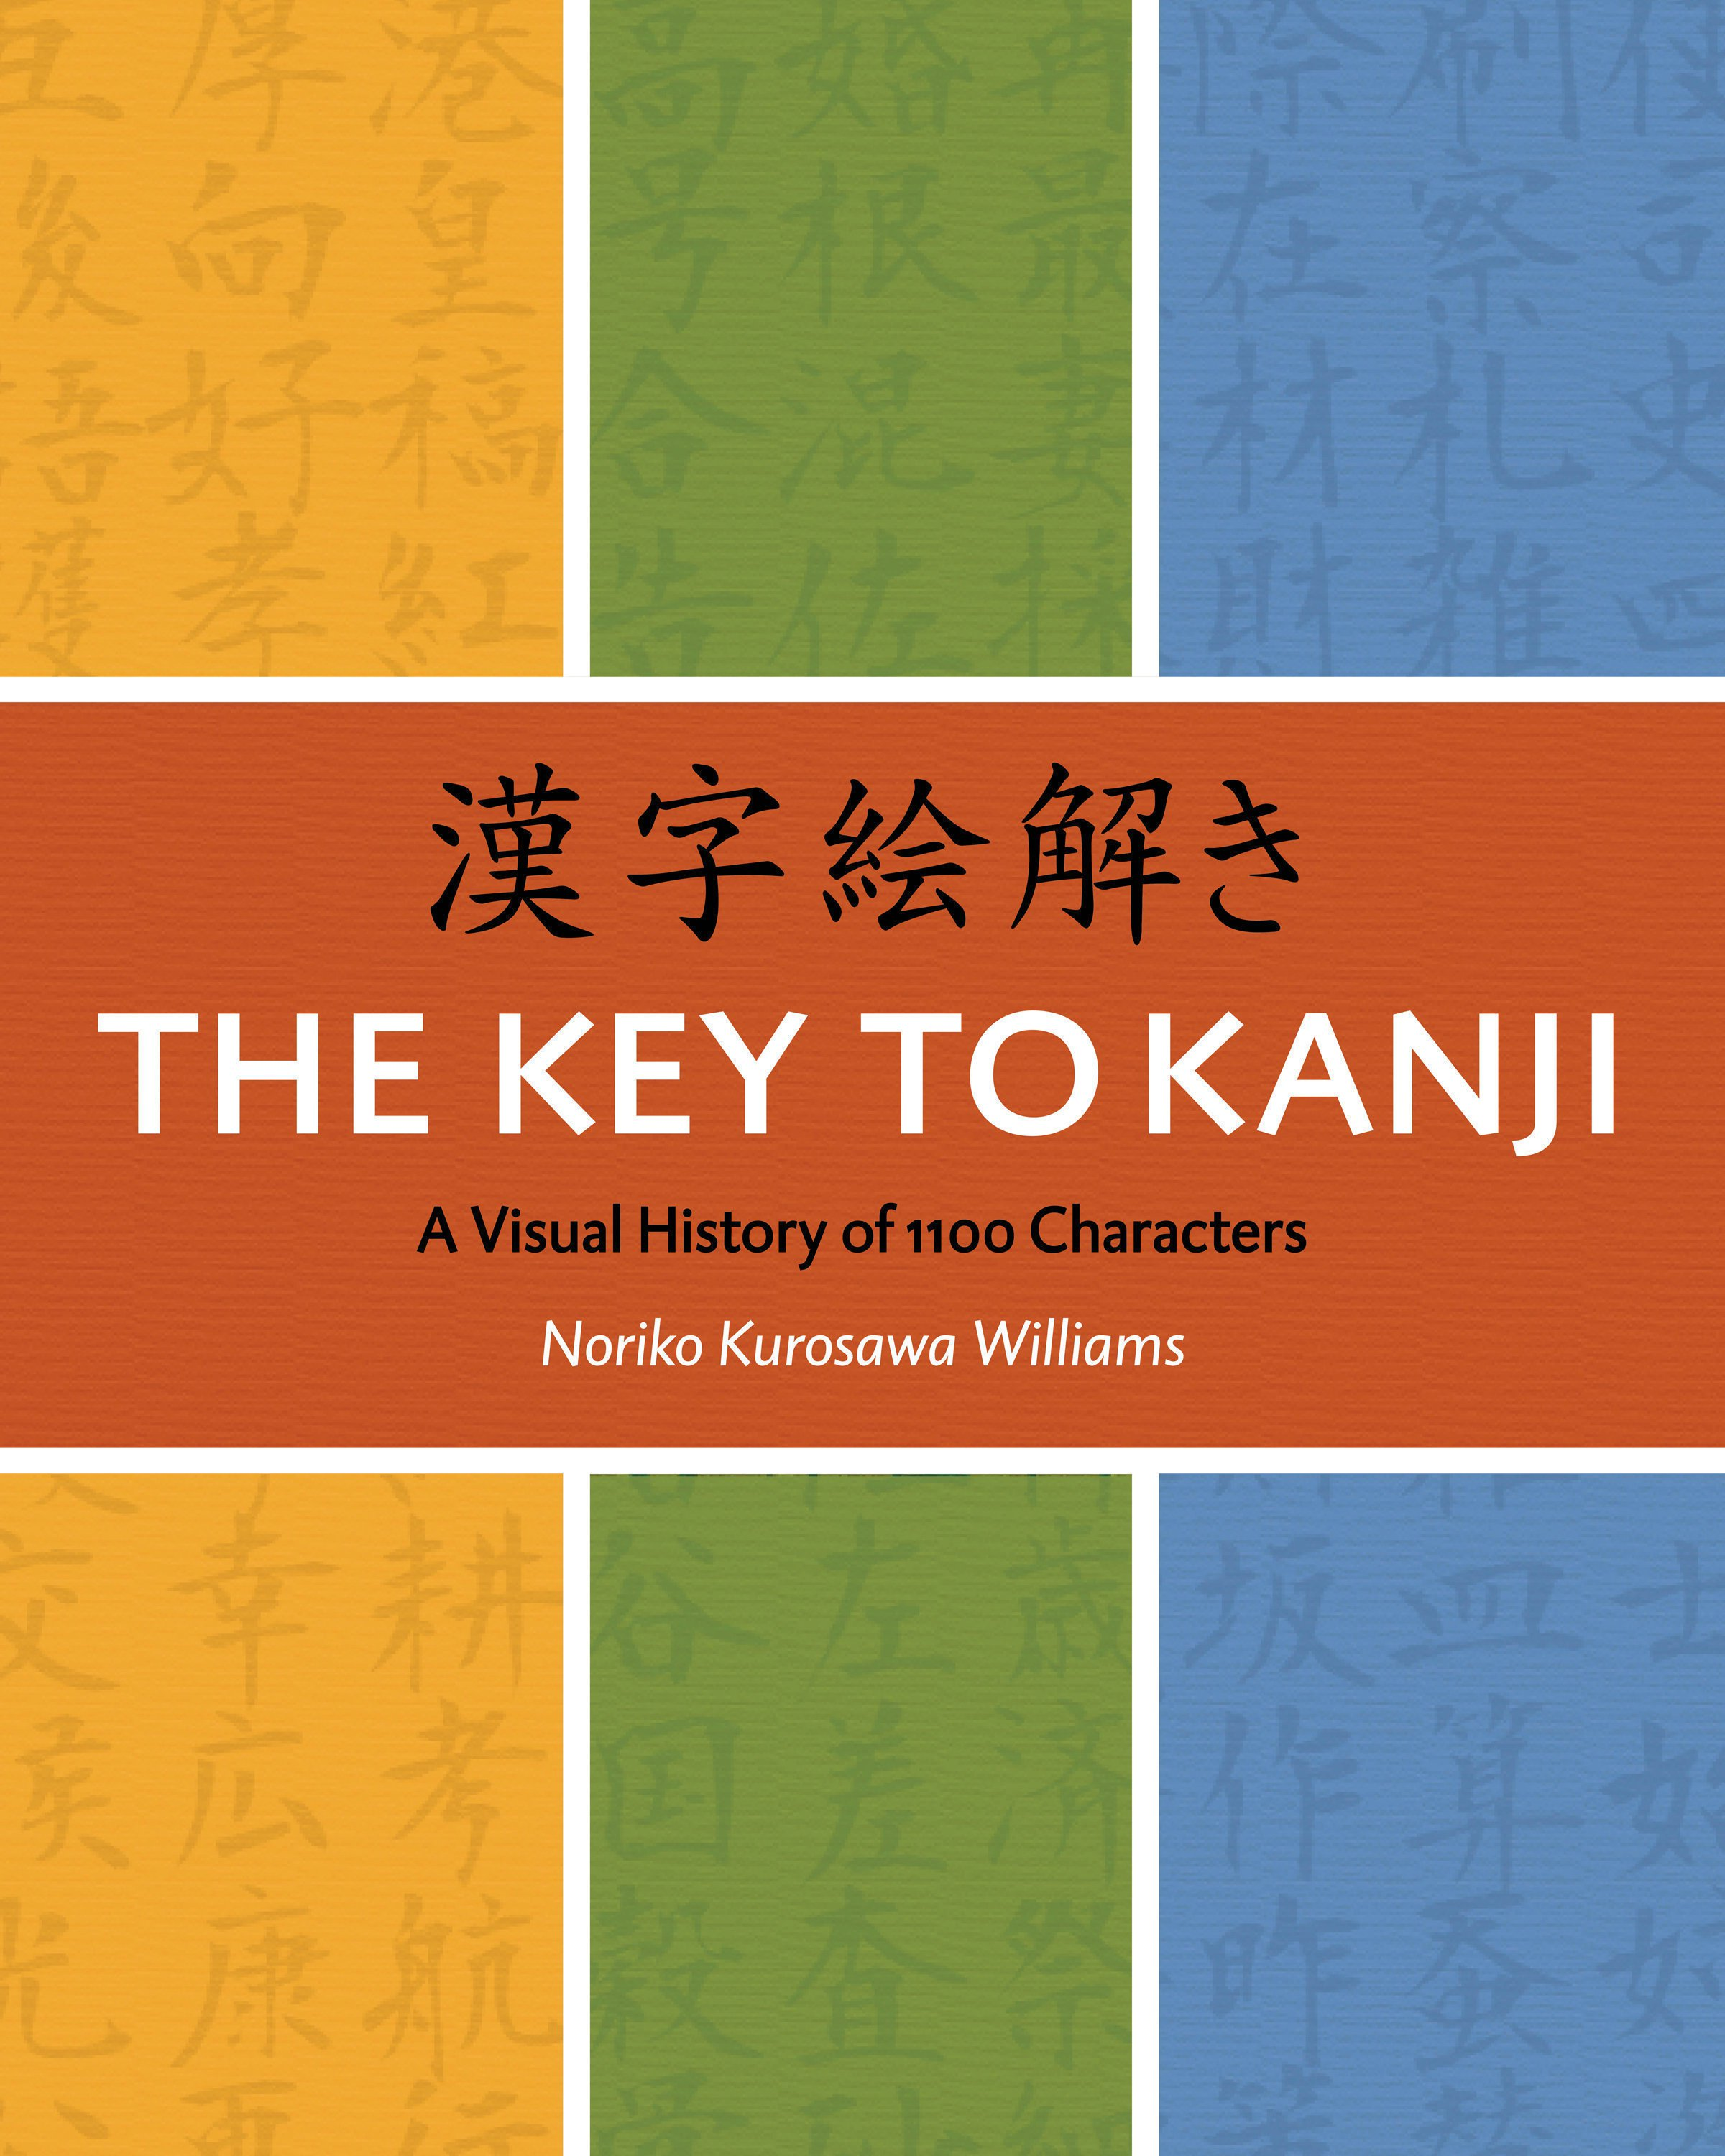 The Key to Kanji: A Visual History of 1100 Characters